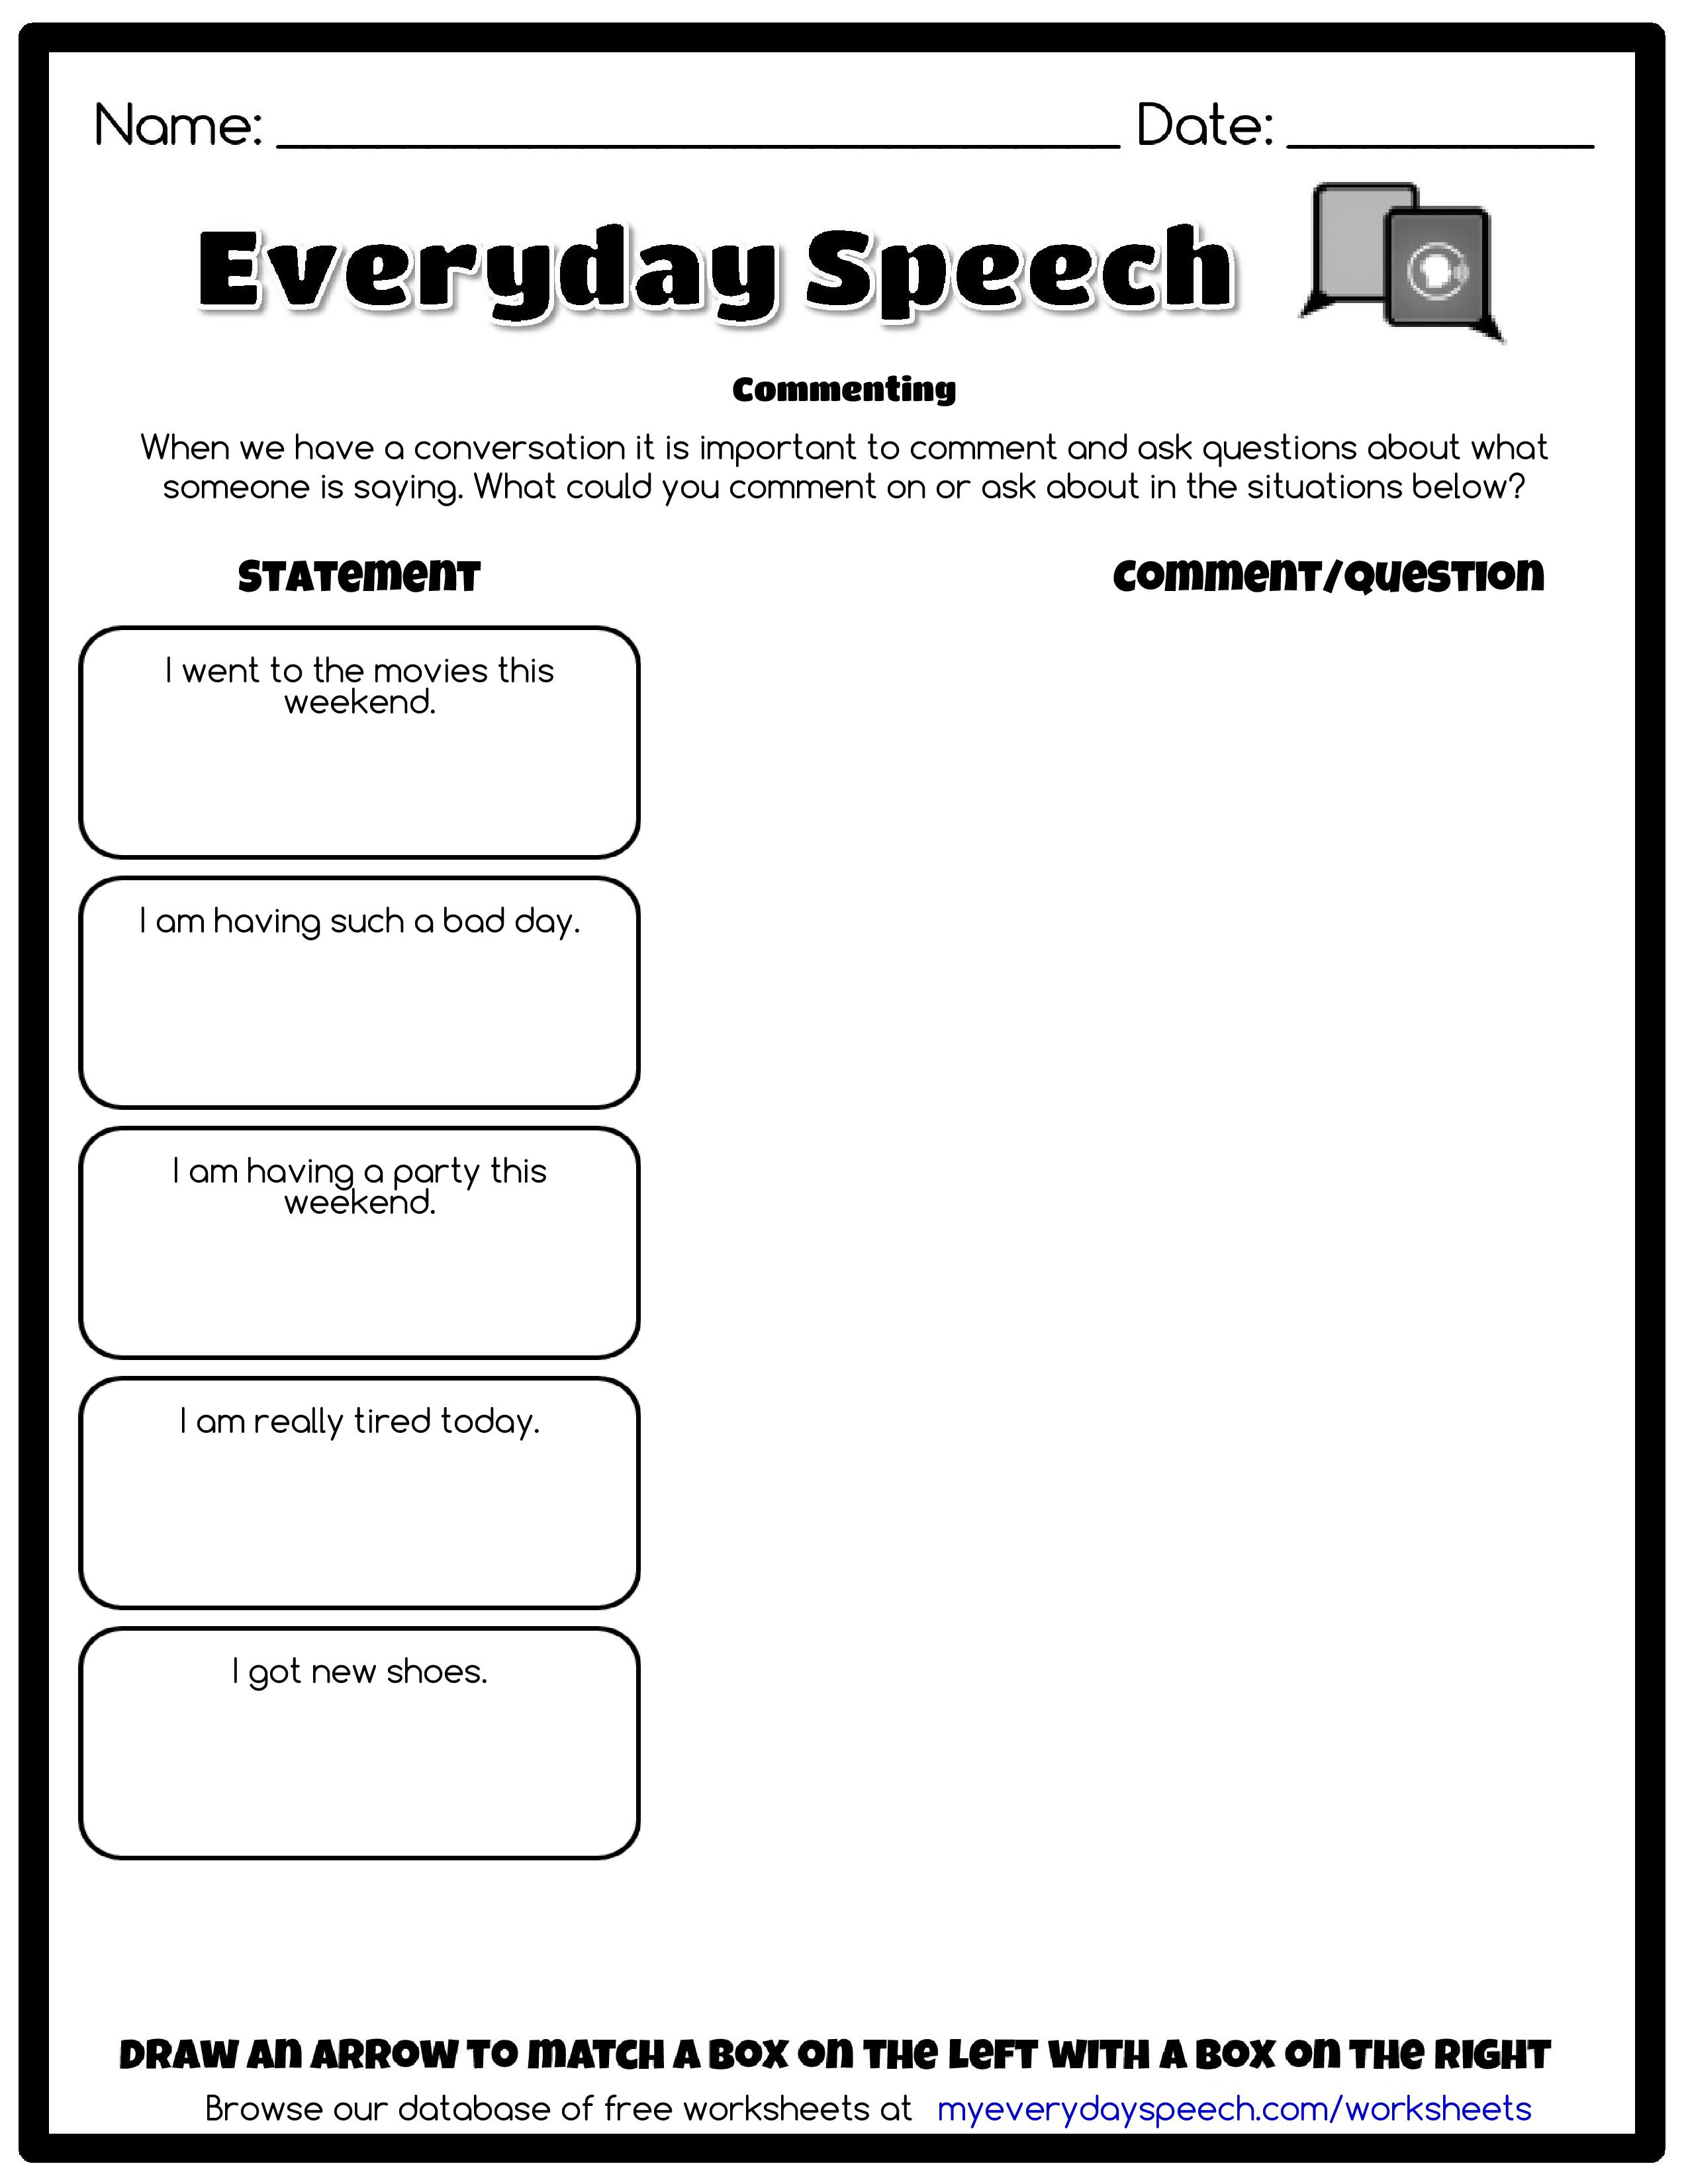 Check Out The Worksheet I Just Made Using Everyday Speech S Worksheet Creator Commenting Wh Speech Therapy Worksheets Therapy Worksheets Speech Activities [ 3300 x 2550 Pixel ]